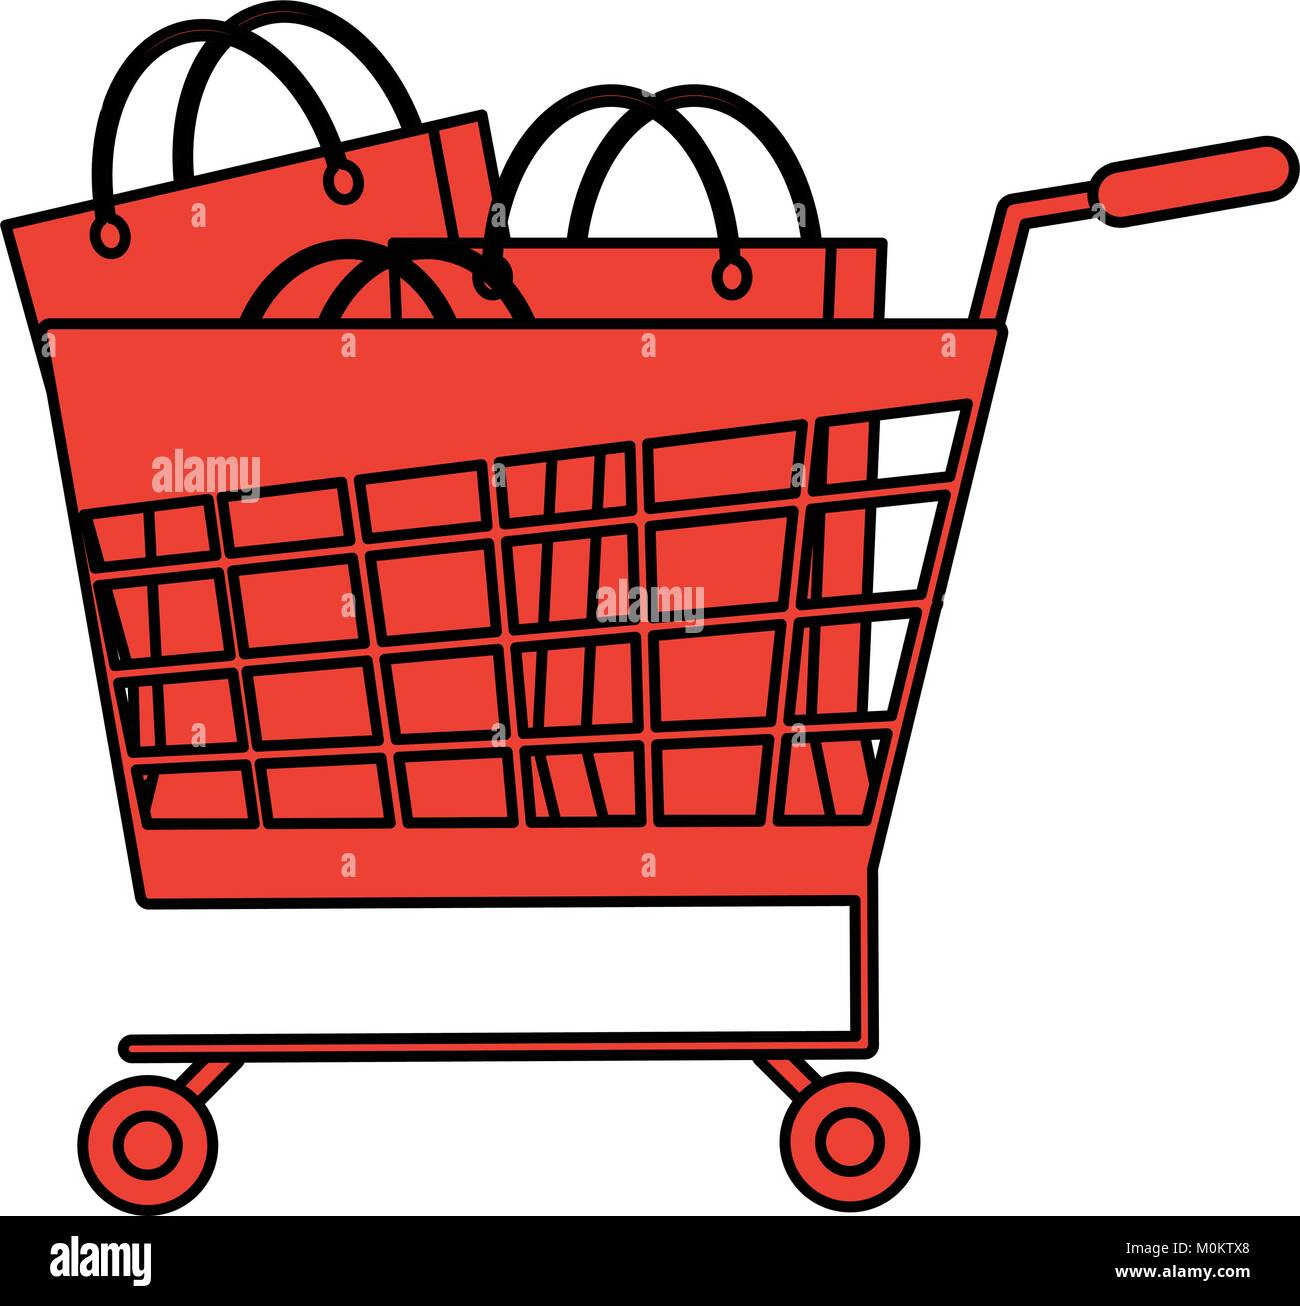 Shopping cart with bags - Stock Vector